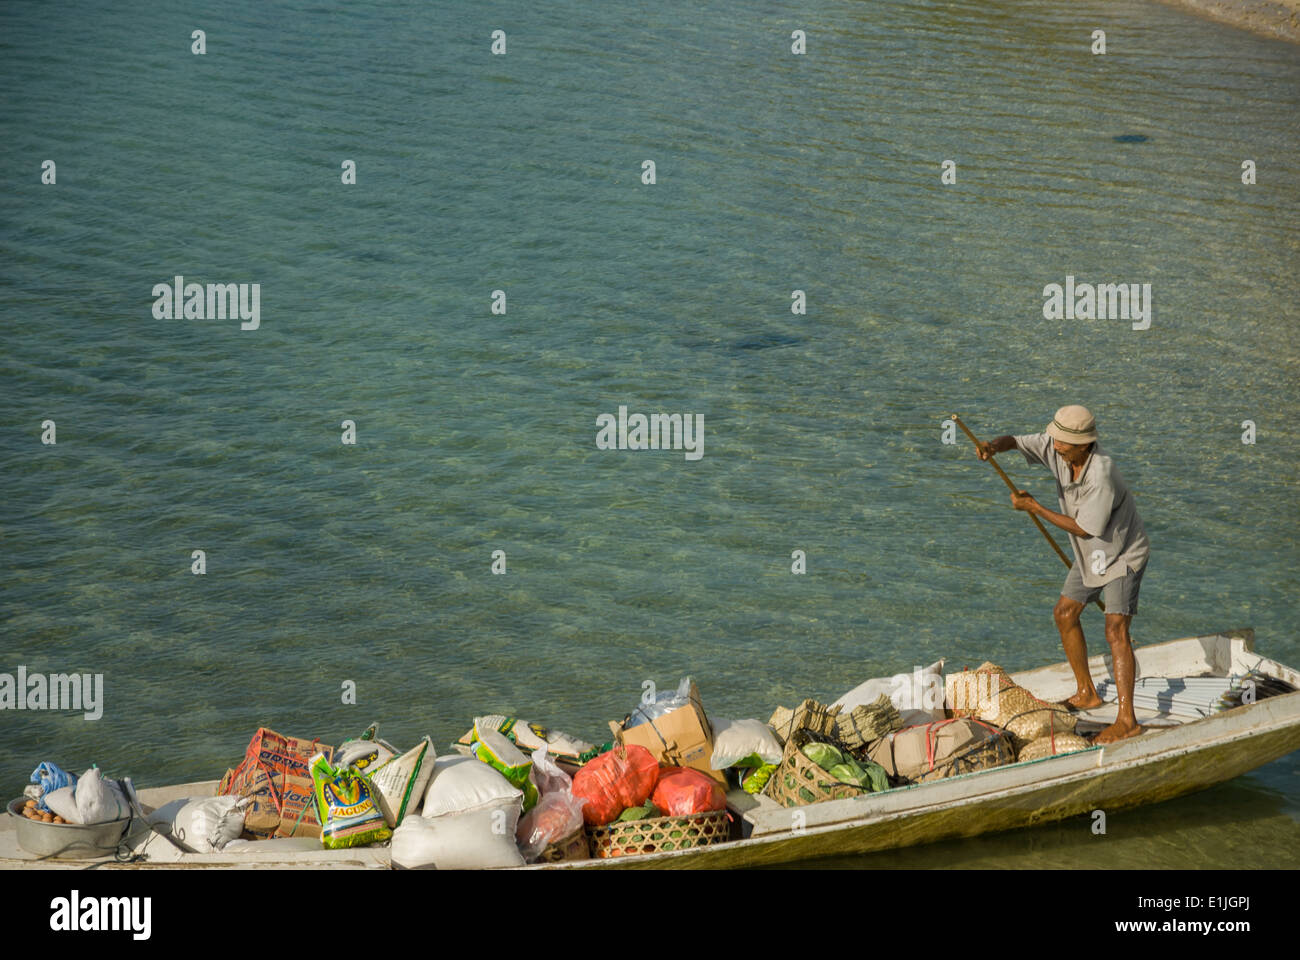 Food trasport by boat with a man Nusa Lembongan Indonesia Stock Photo